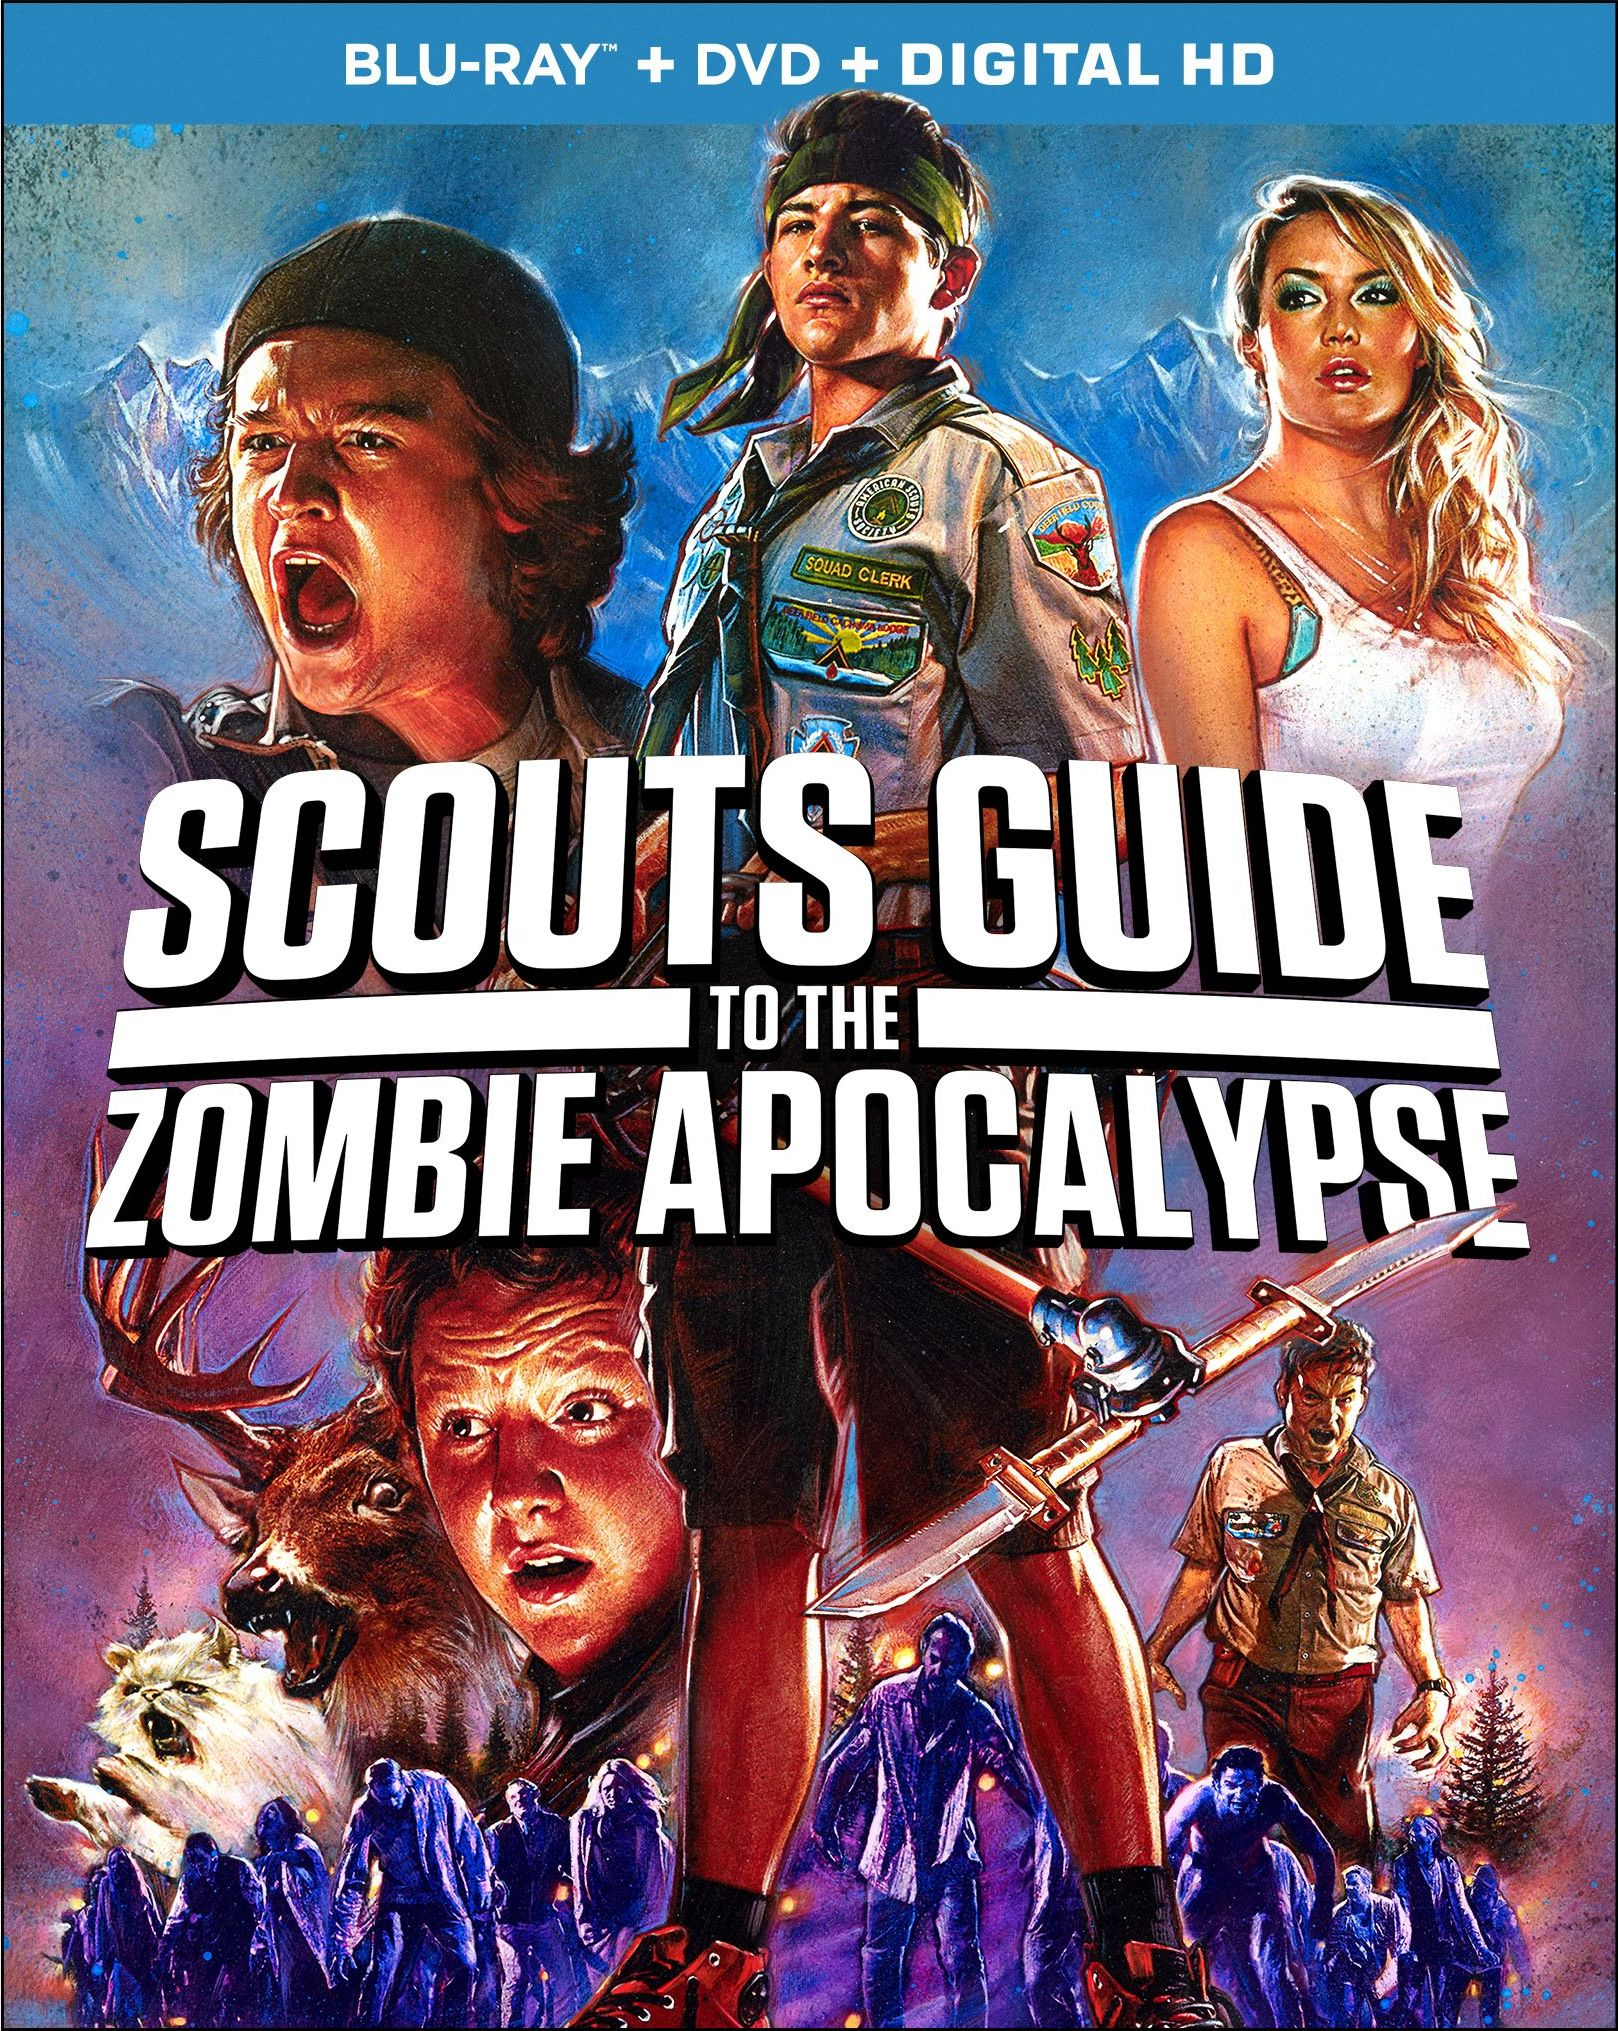 Scouts Guide to the Zombie Apocalypse Blu-ray Review